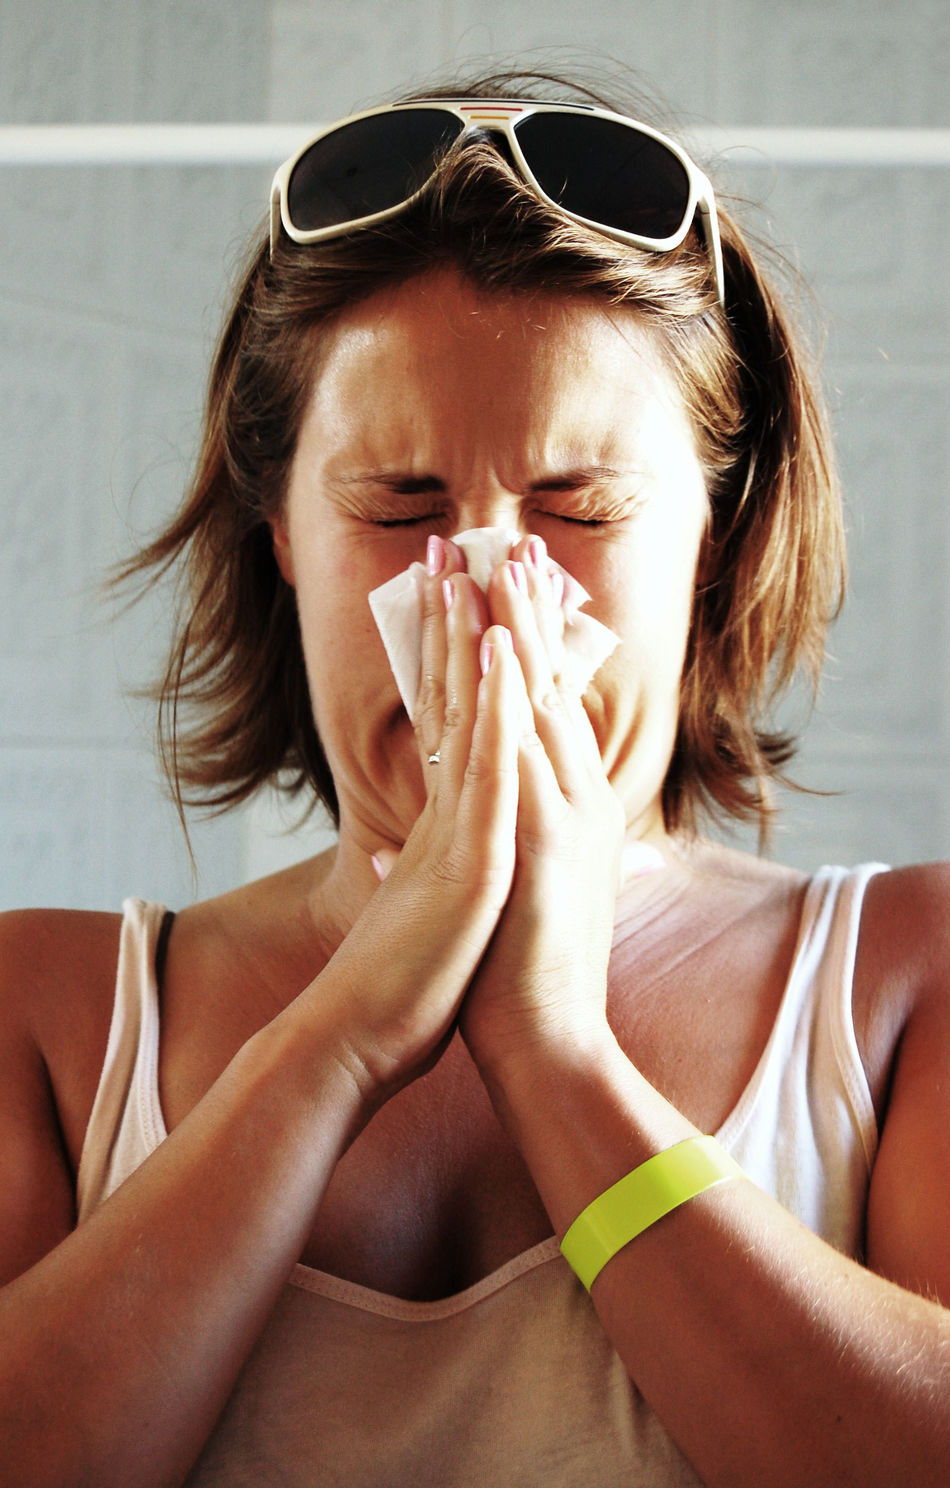 Woman blowing her nose hard into a tissue at home At Home Casual Clothing Coughing Female Glasses Health Home Long Hair Person Protection Sneeze Sneezing Sunglasses Tissue Woman Young Adult Young Women